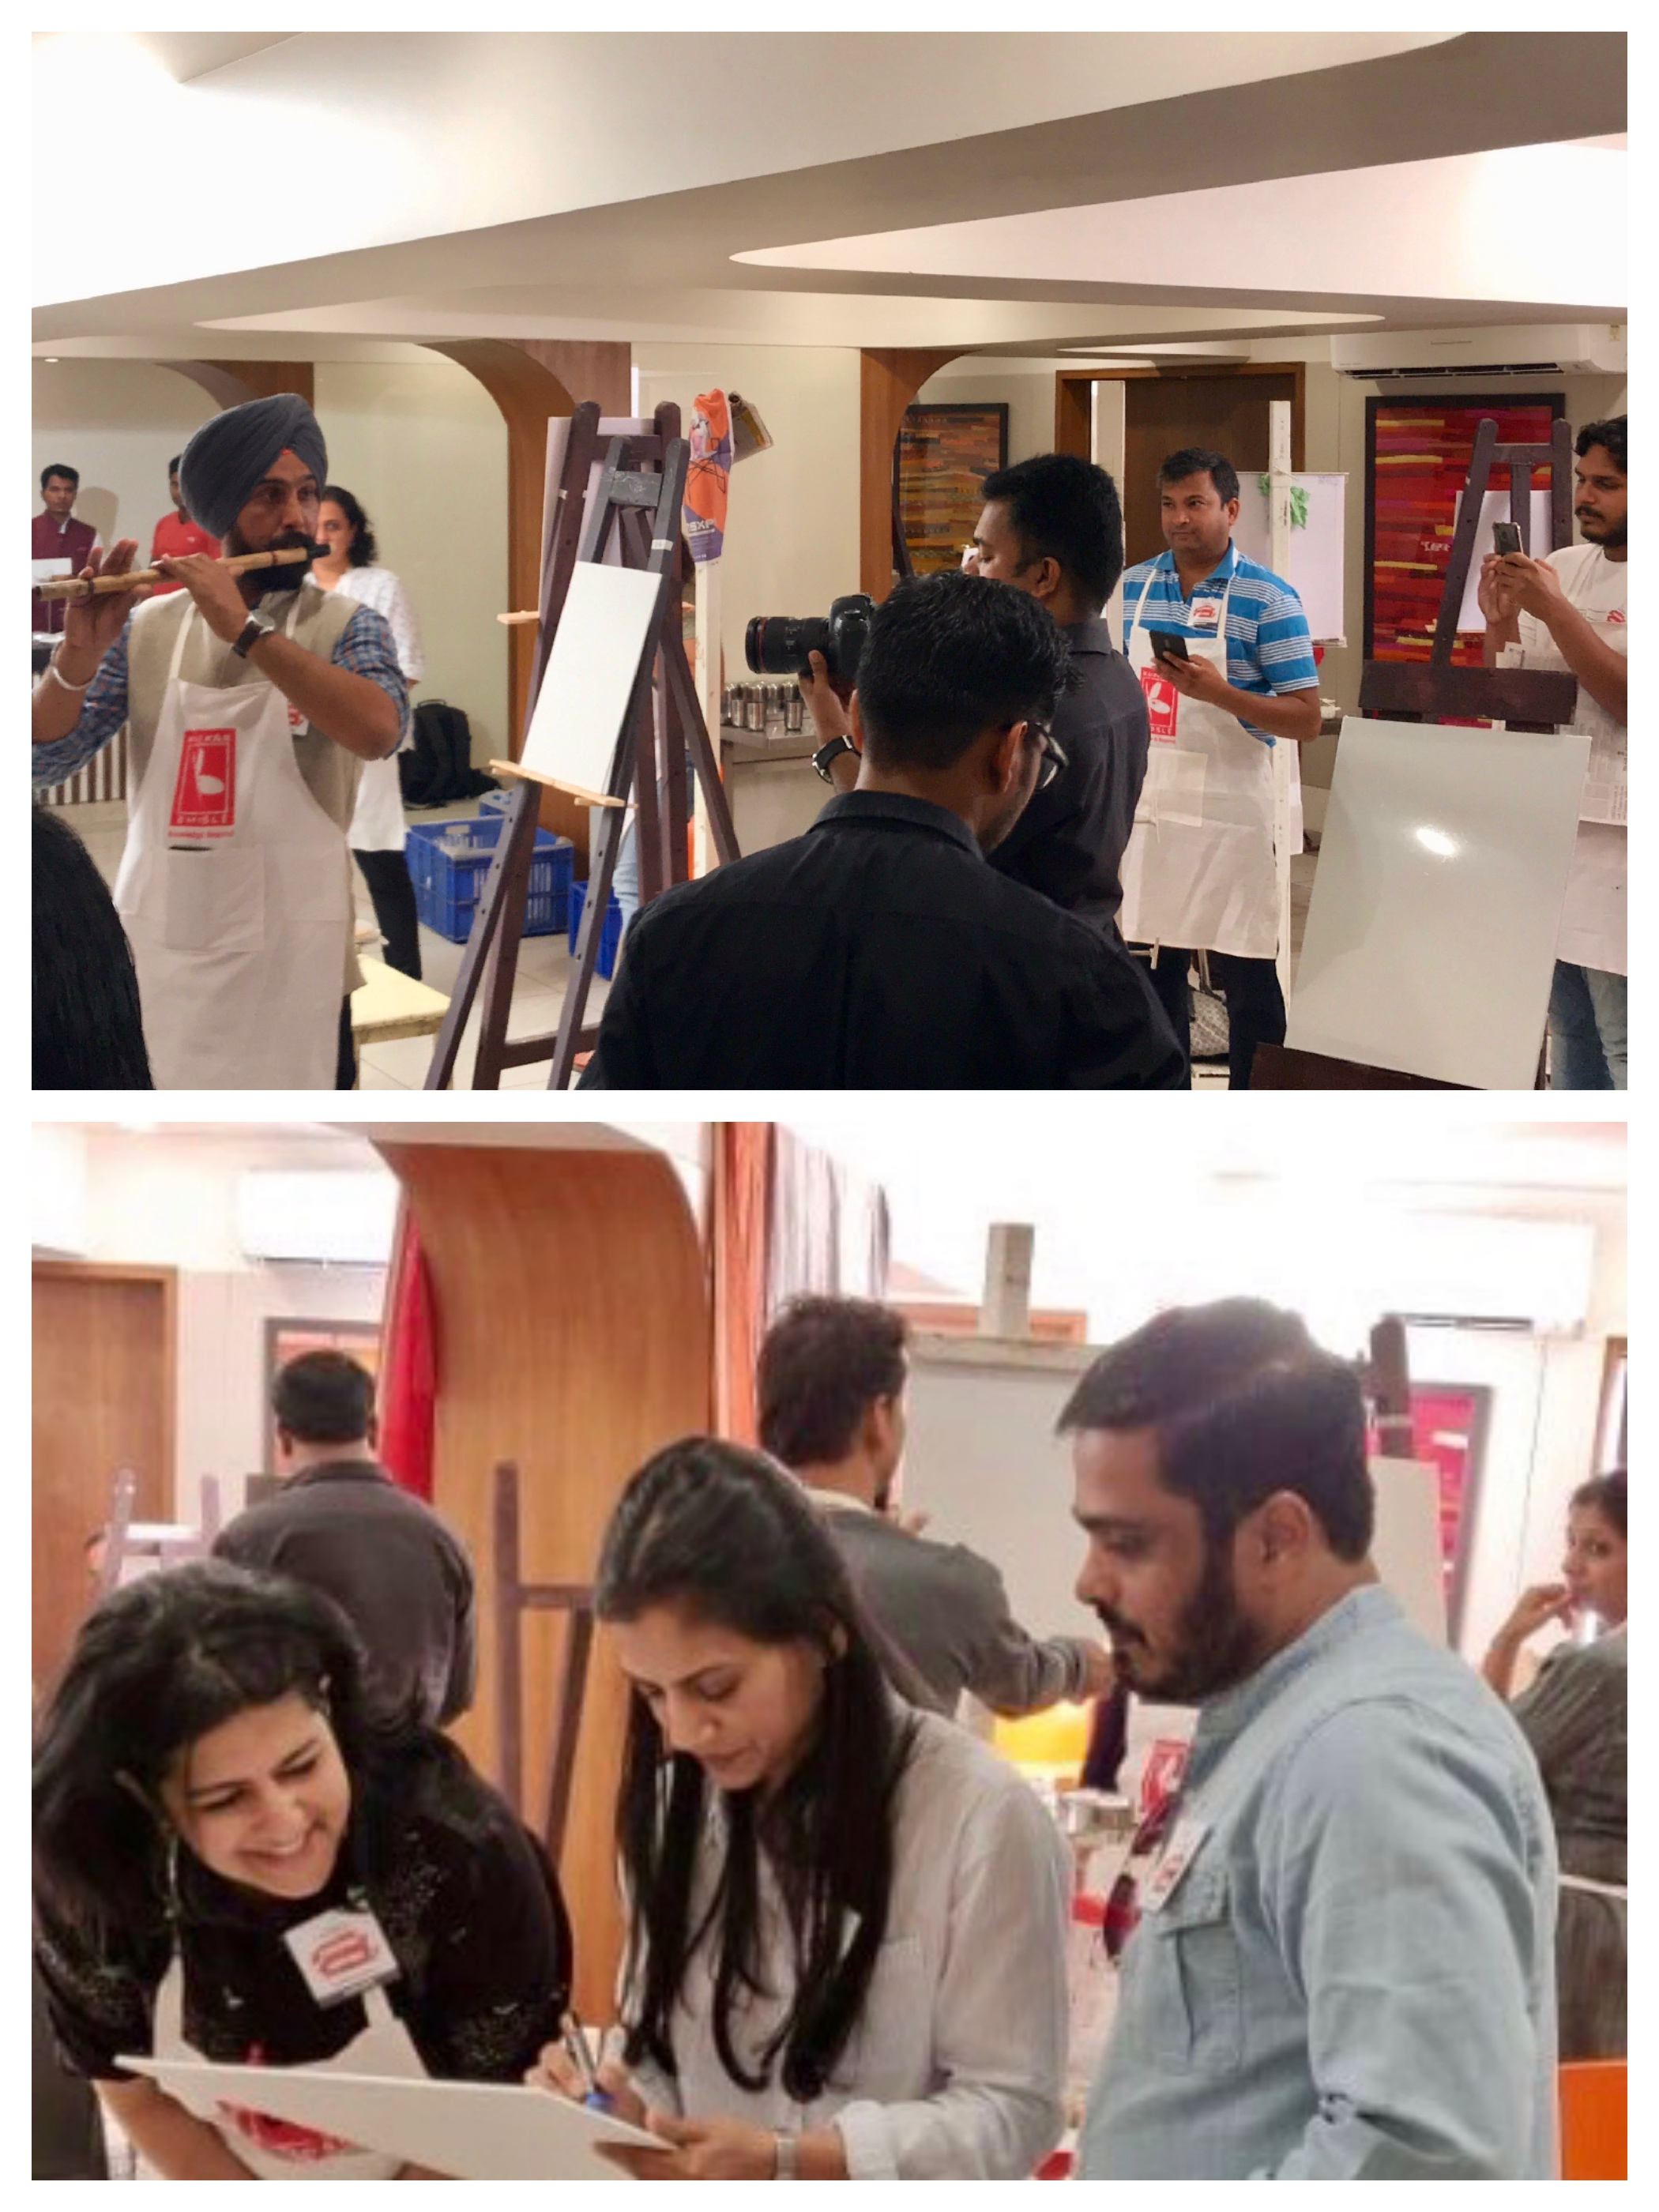 An impromptu flute performance by one of the participants & canvas signing by Pramod &Suchitra as a small keepsake of the workshop while the models & lighting were being setup.